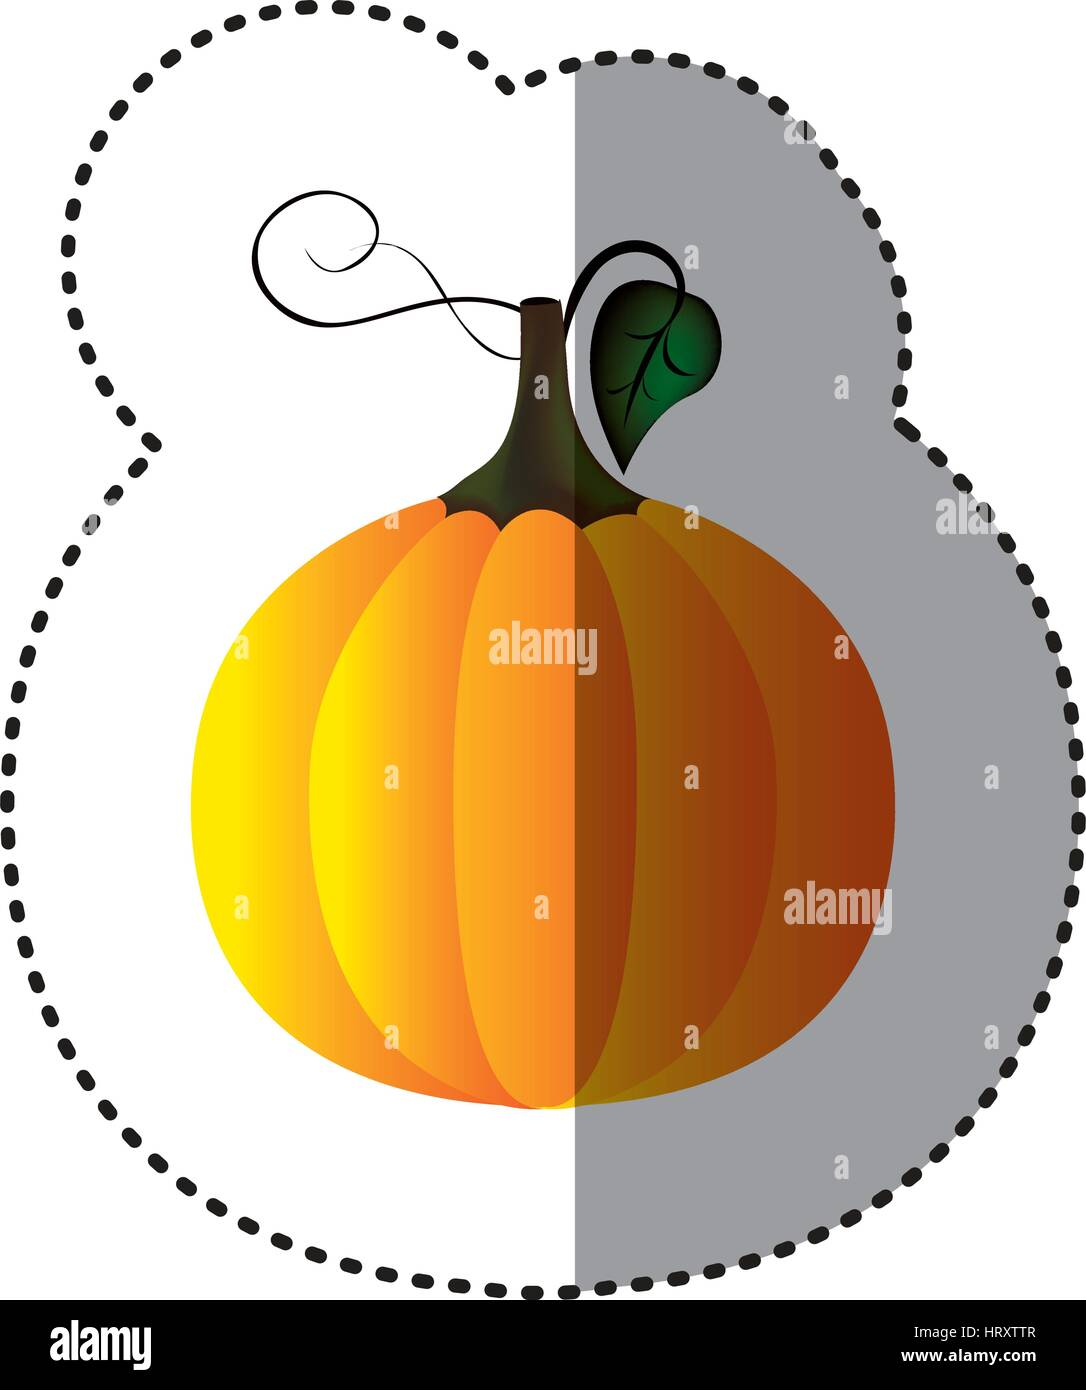 sticker colorful pumpkin vegetable halloween icon